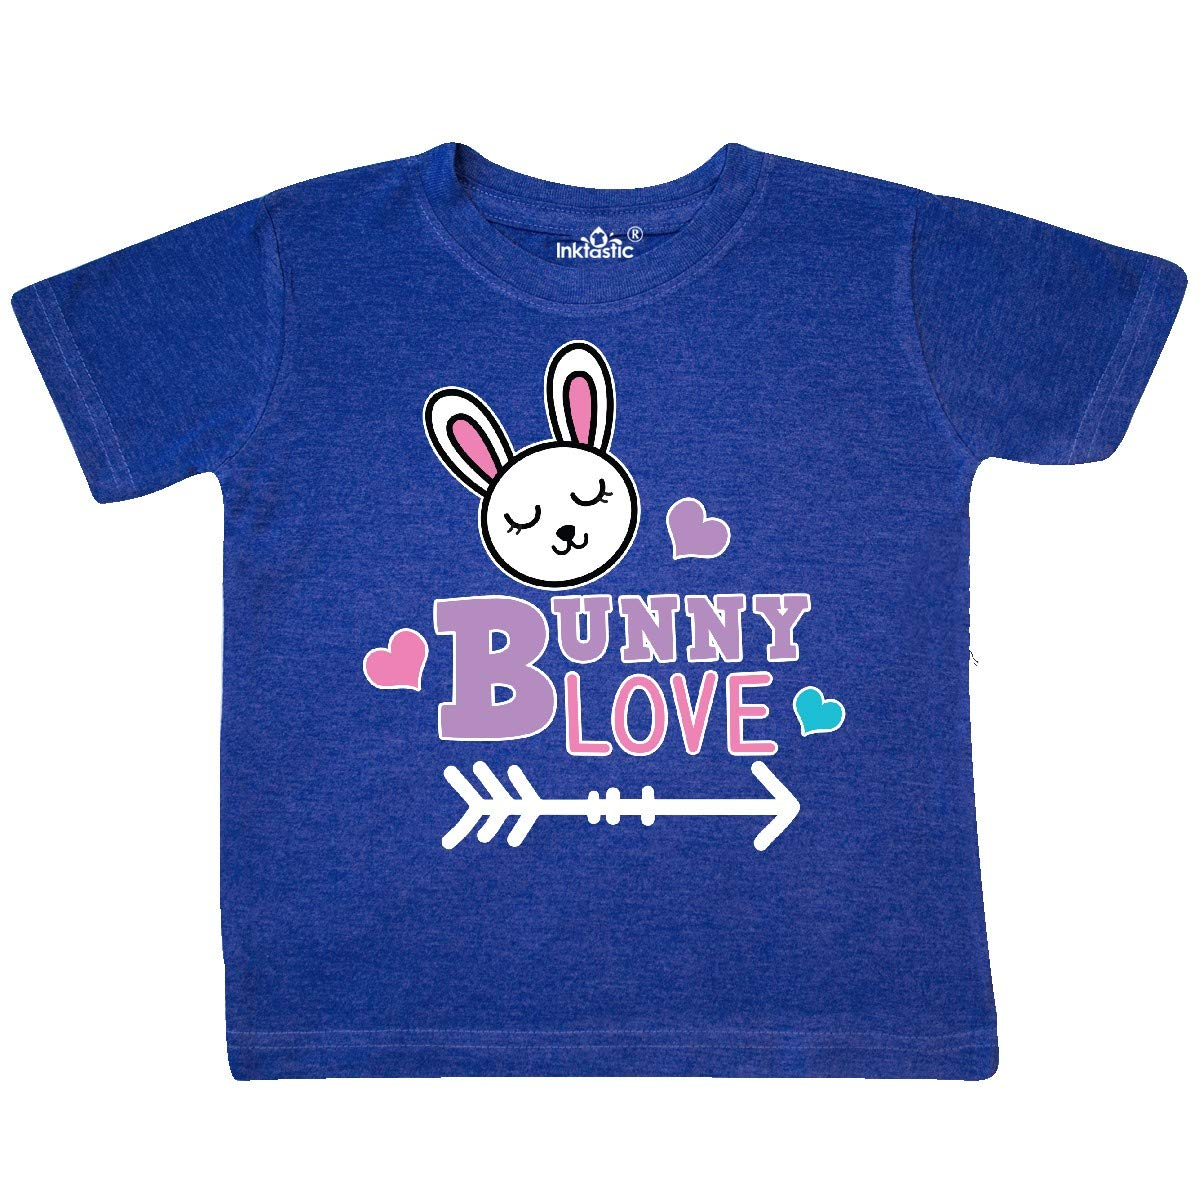 inktastic Bunny Love with Cute Bunny Face Hearts and Arrow Toddler T-Shirt